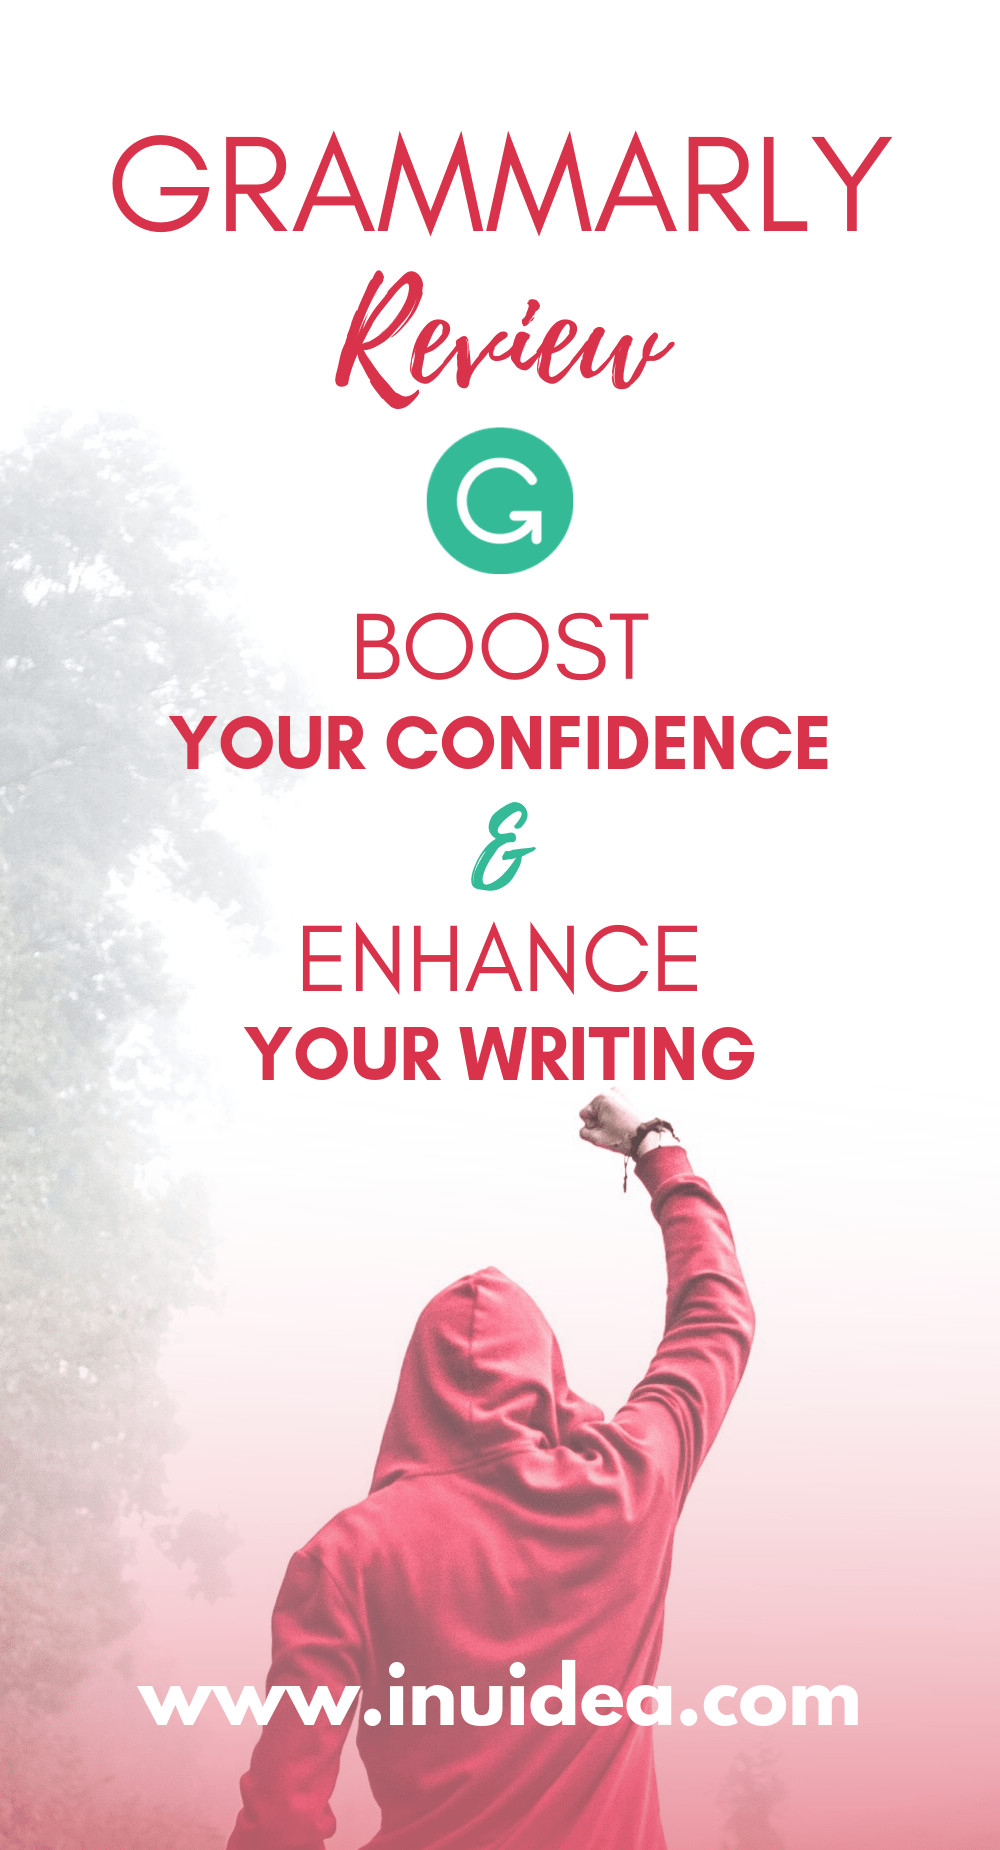 Amazon Grammarly Proofreading Software Deals April